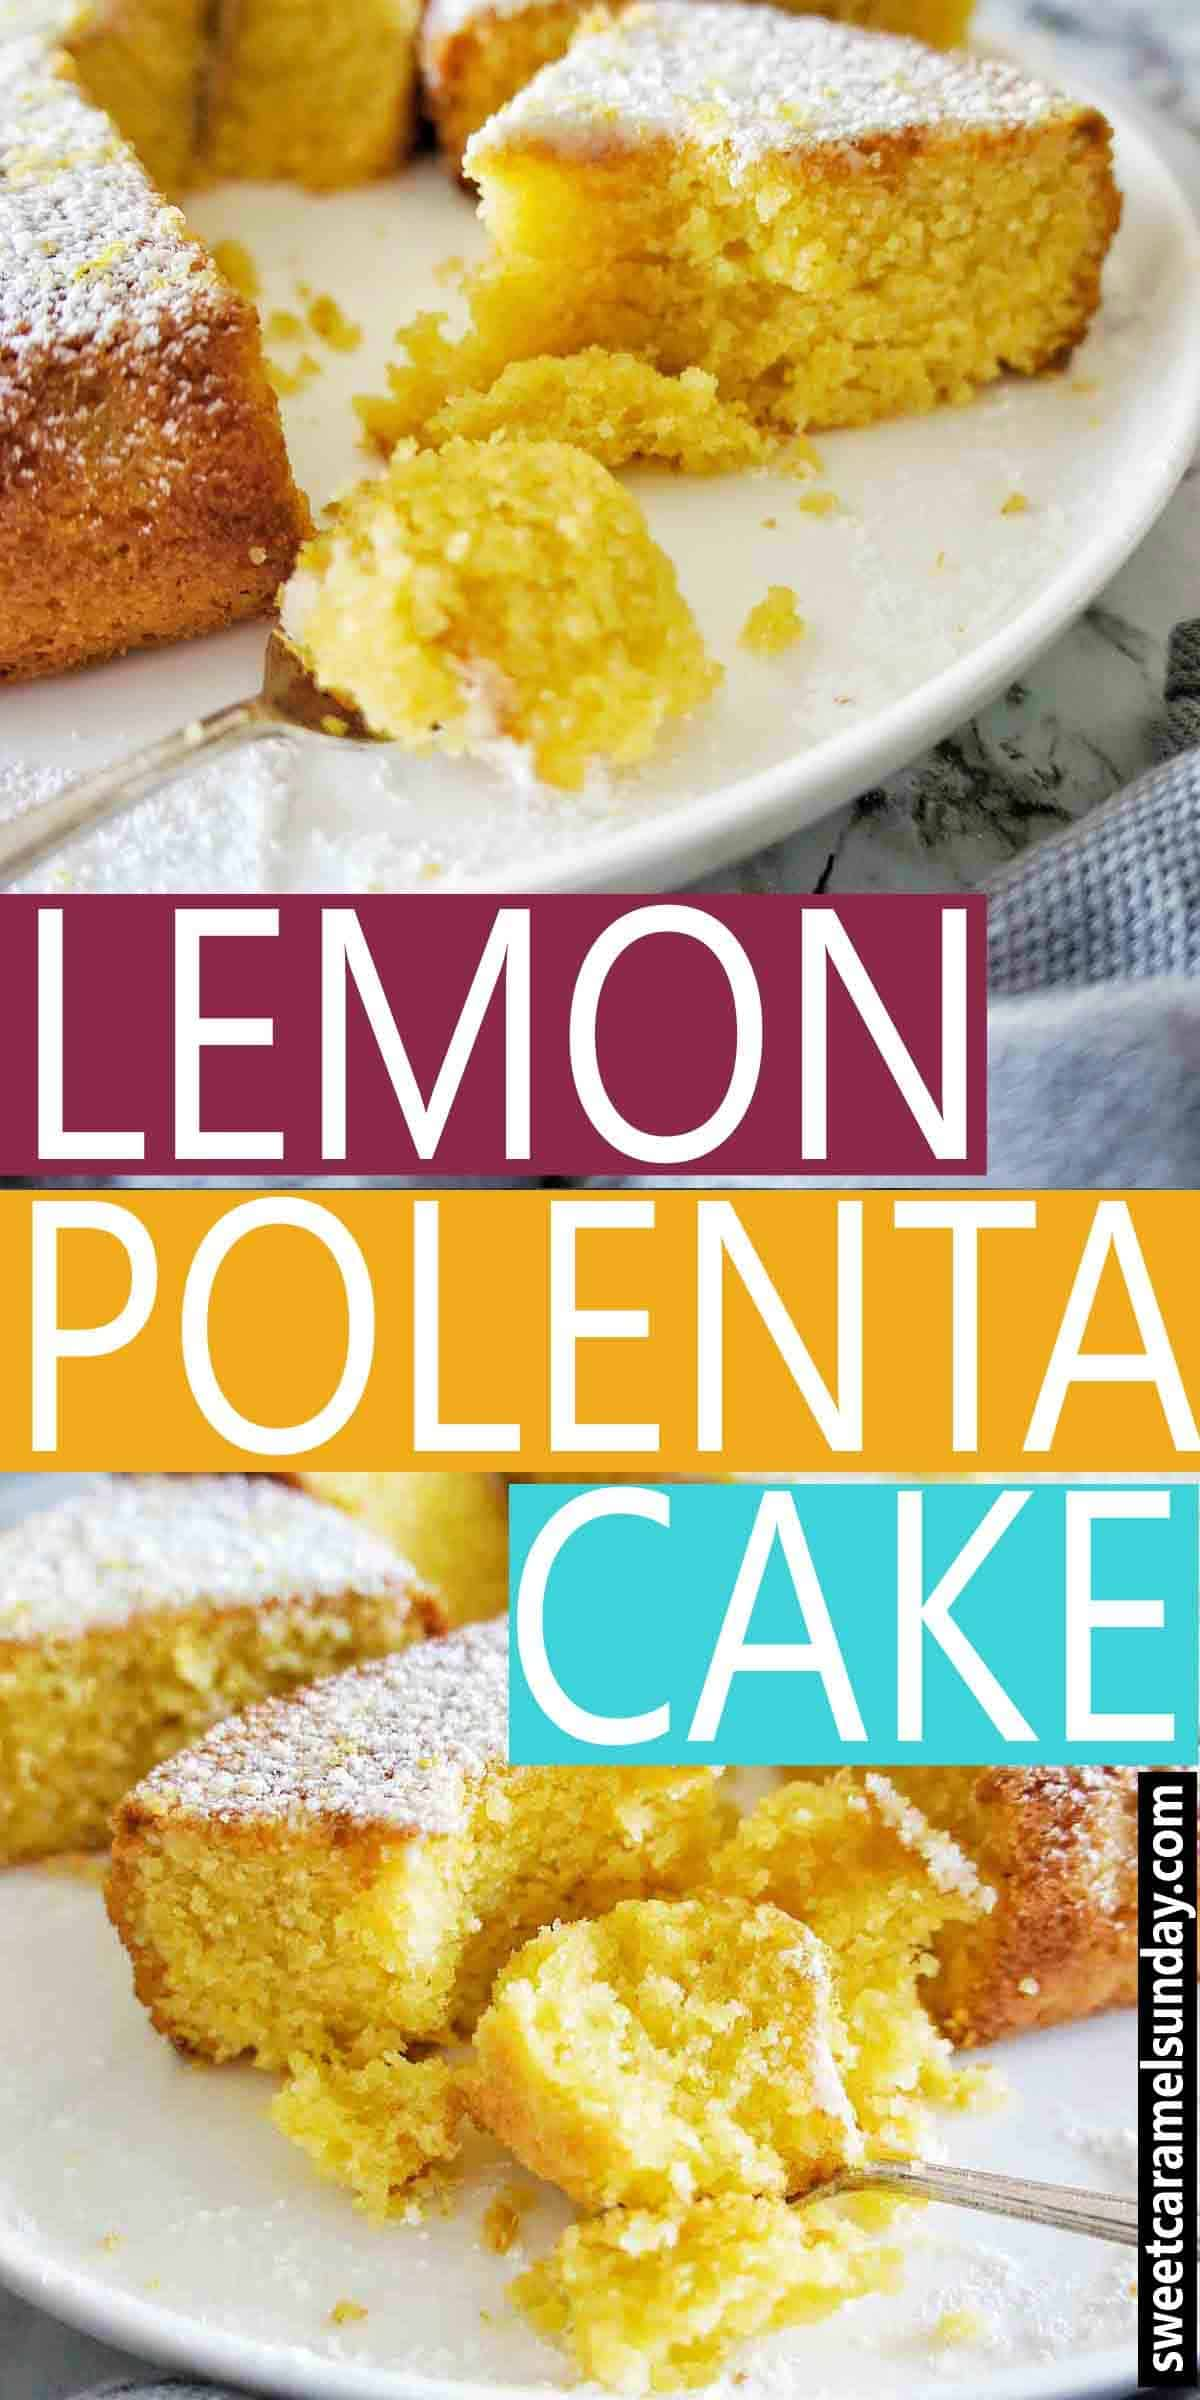 Lemon Polenta Cake with text overlay